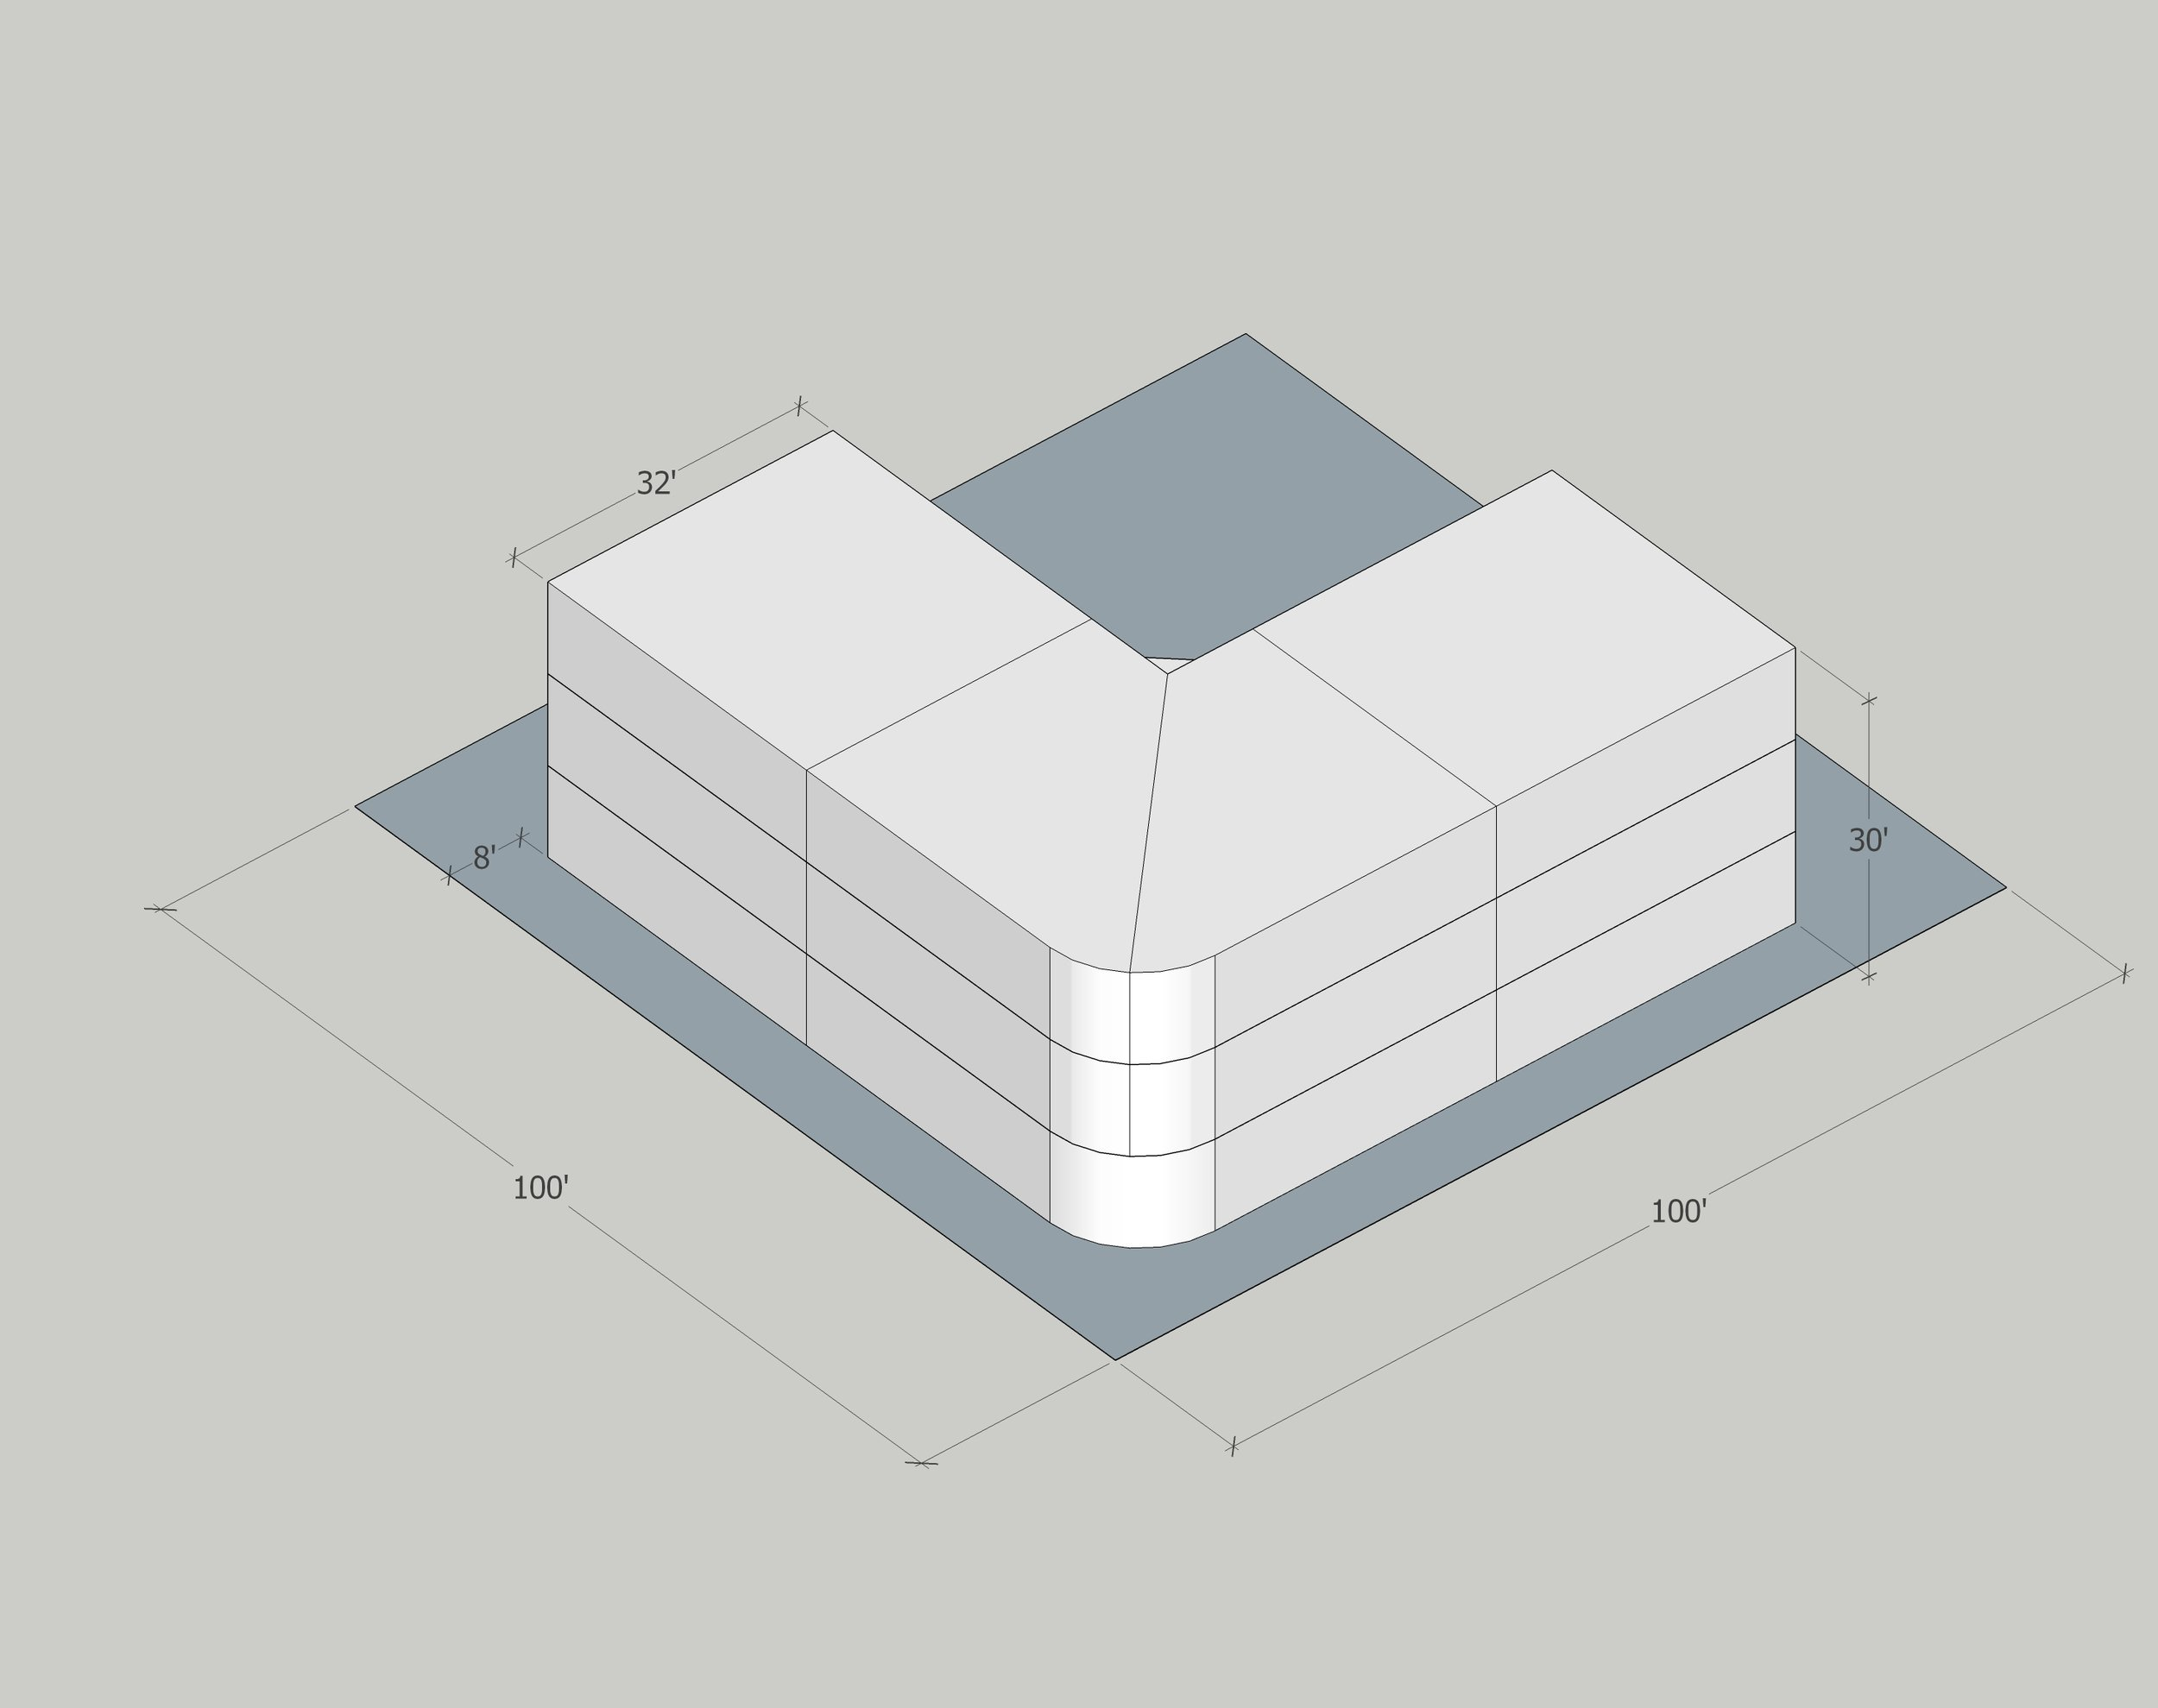 Building Data:  Neighborhood: Hosford-Abernethy Year Built: 2014 Typology: Walk-up Apartment Building Units: 12 Stories: 3 Site Area: 10,000sf Building Area: 8,825 FAR: 0.88:1 Density: 52.3 du/net acre Zoning: R2 (1 Dwelling/2000sf)Is it Legal? Apparently